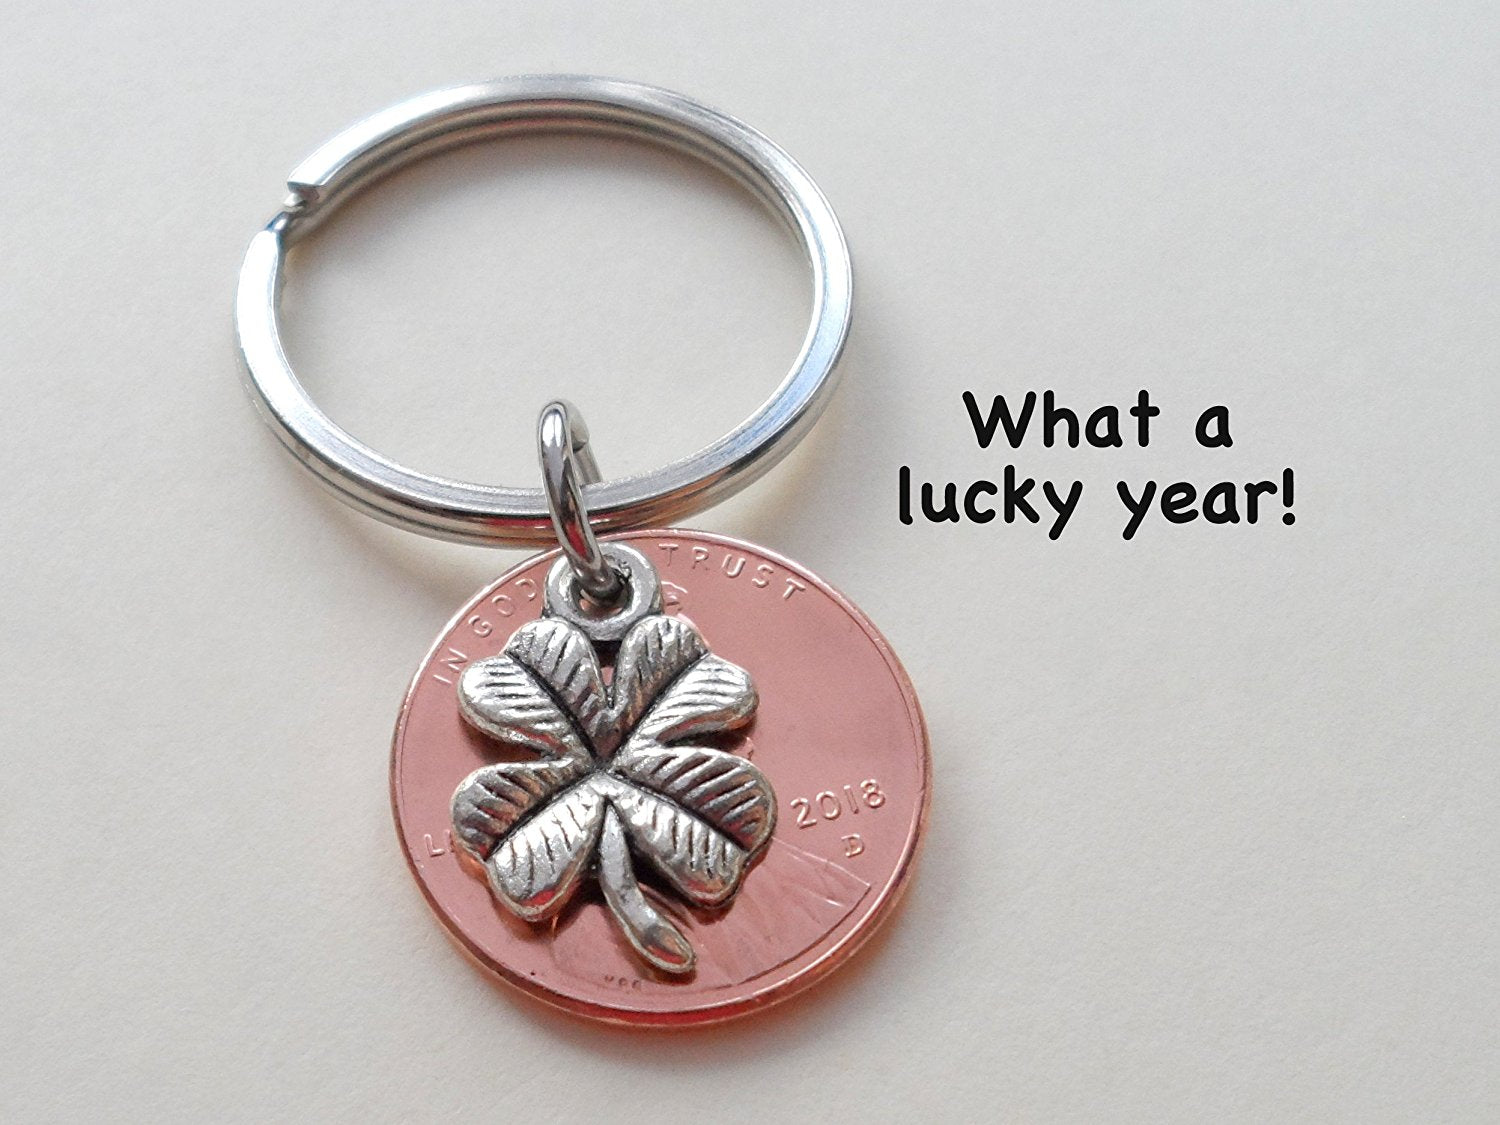 Clover Charm Layered Over 2018 Us One Cent Penny Keychain